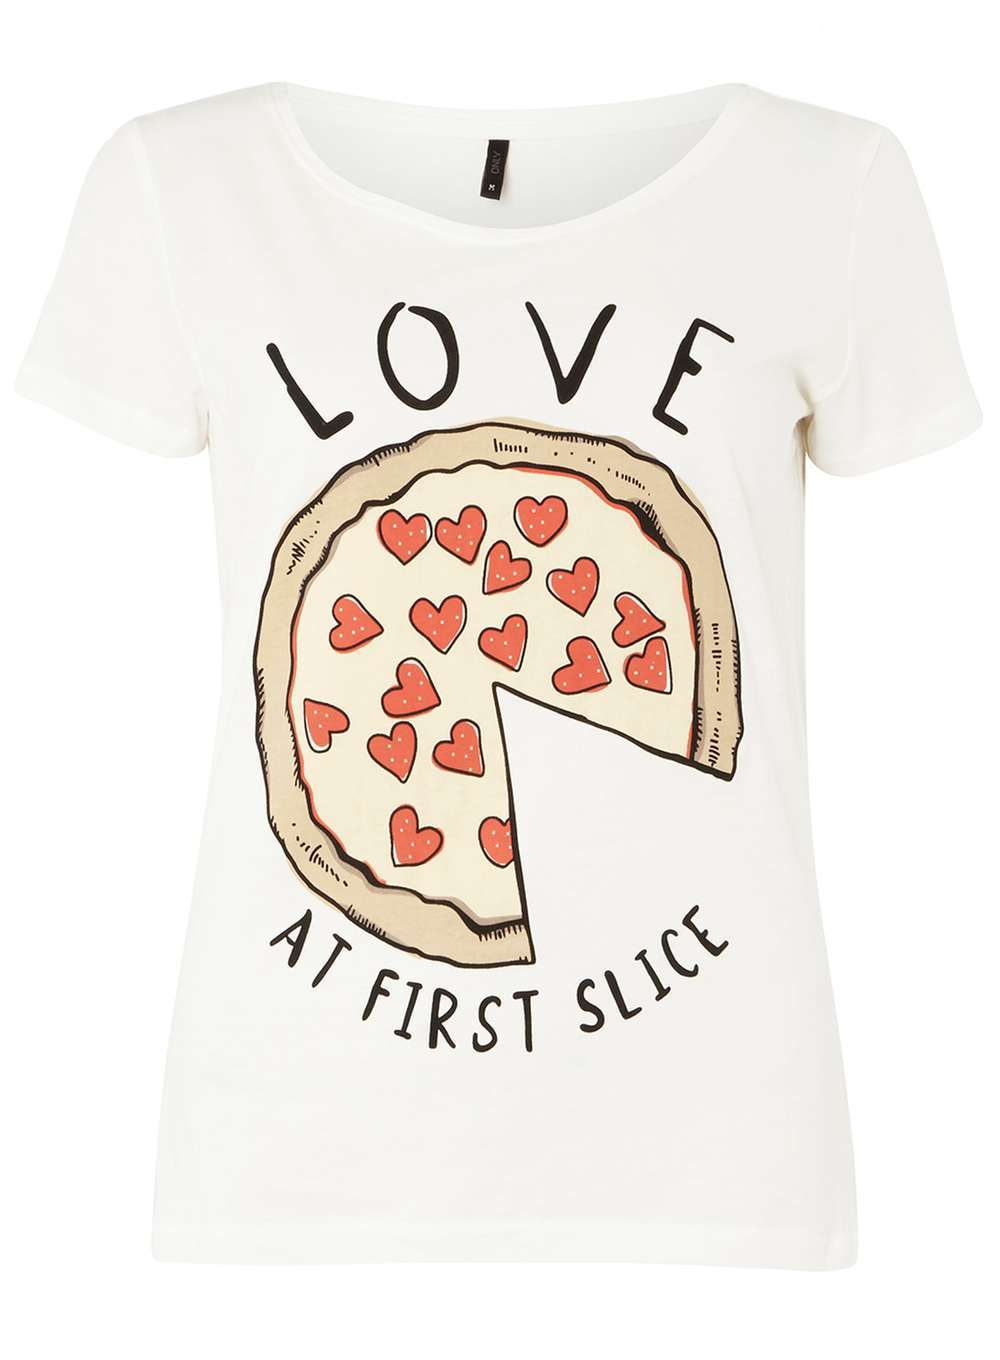 Womens **Only White 'love Pizza' T Shirt White - neckline: round neck; style: t-shirt; predominant colour: white; secondary colour: black; occasions: casual; length: standard; fibres: polyester/polyamide - 100%; fit: body skimming; sleeve length: short sleeve; sleeve style: standard; pattern type: fabric; texture group: jersey - stretchy/drapey; pattern: graphic/slogan; multicoloured: multicoloured; season: a/w 2016; wardrobe: highlight